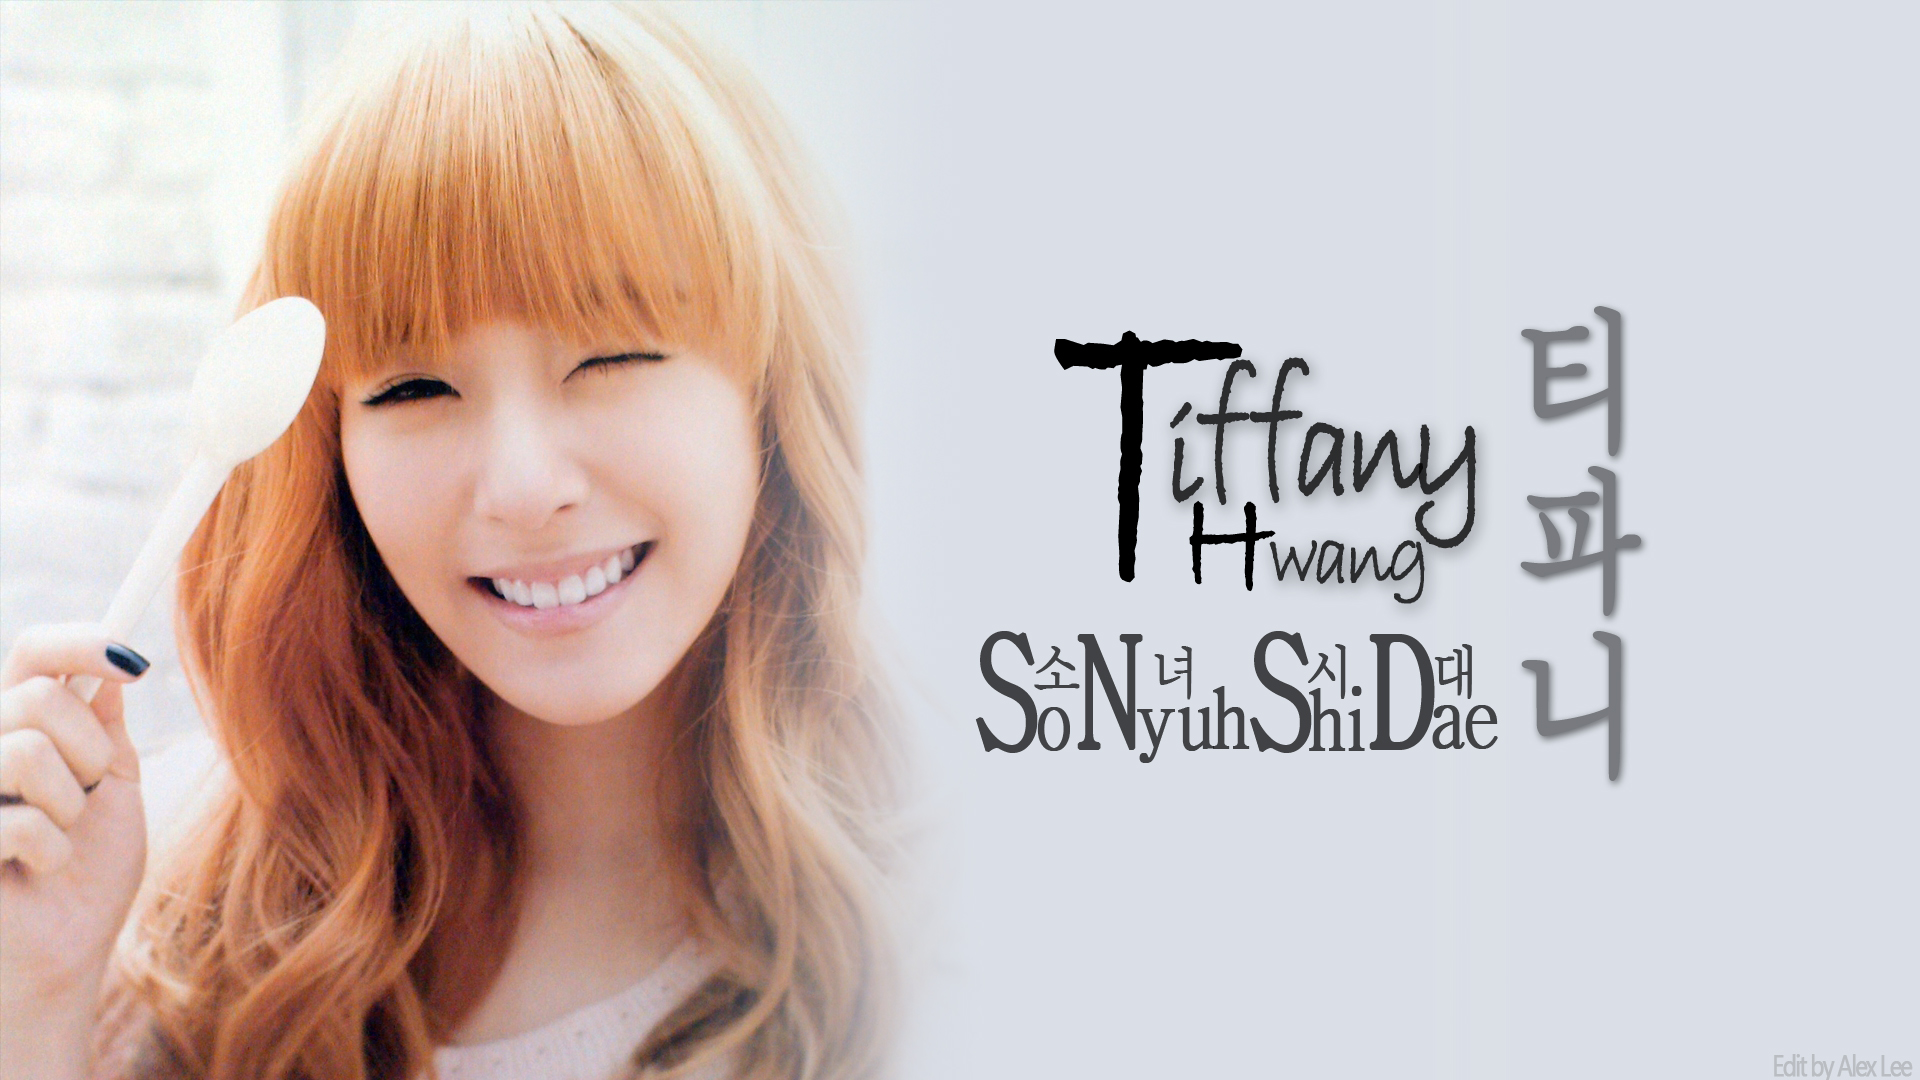 Guitar With Girl Hd Wallpaper 3 Tiffany Hwang Hd Wallpapers Background Images